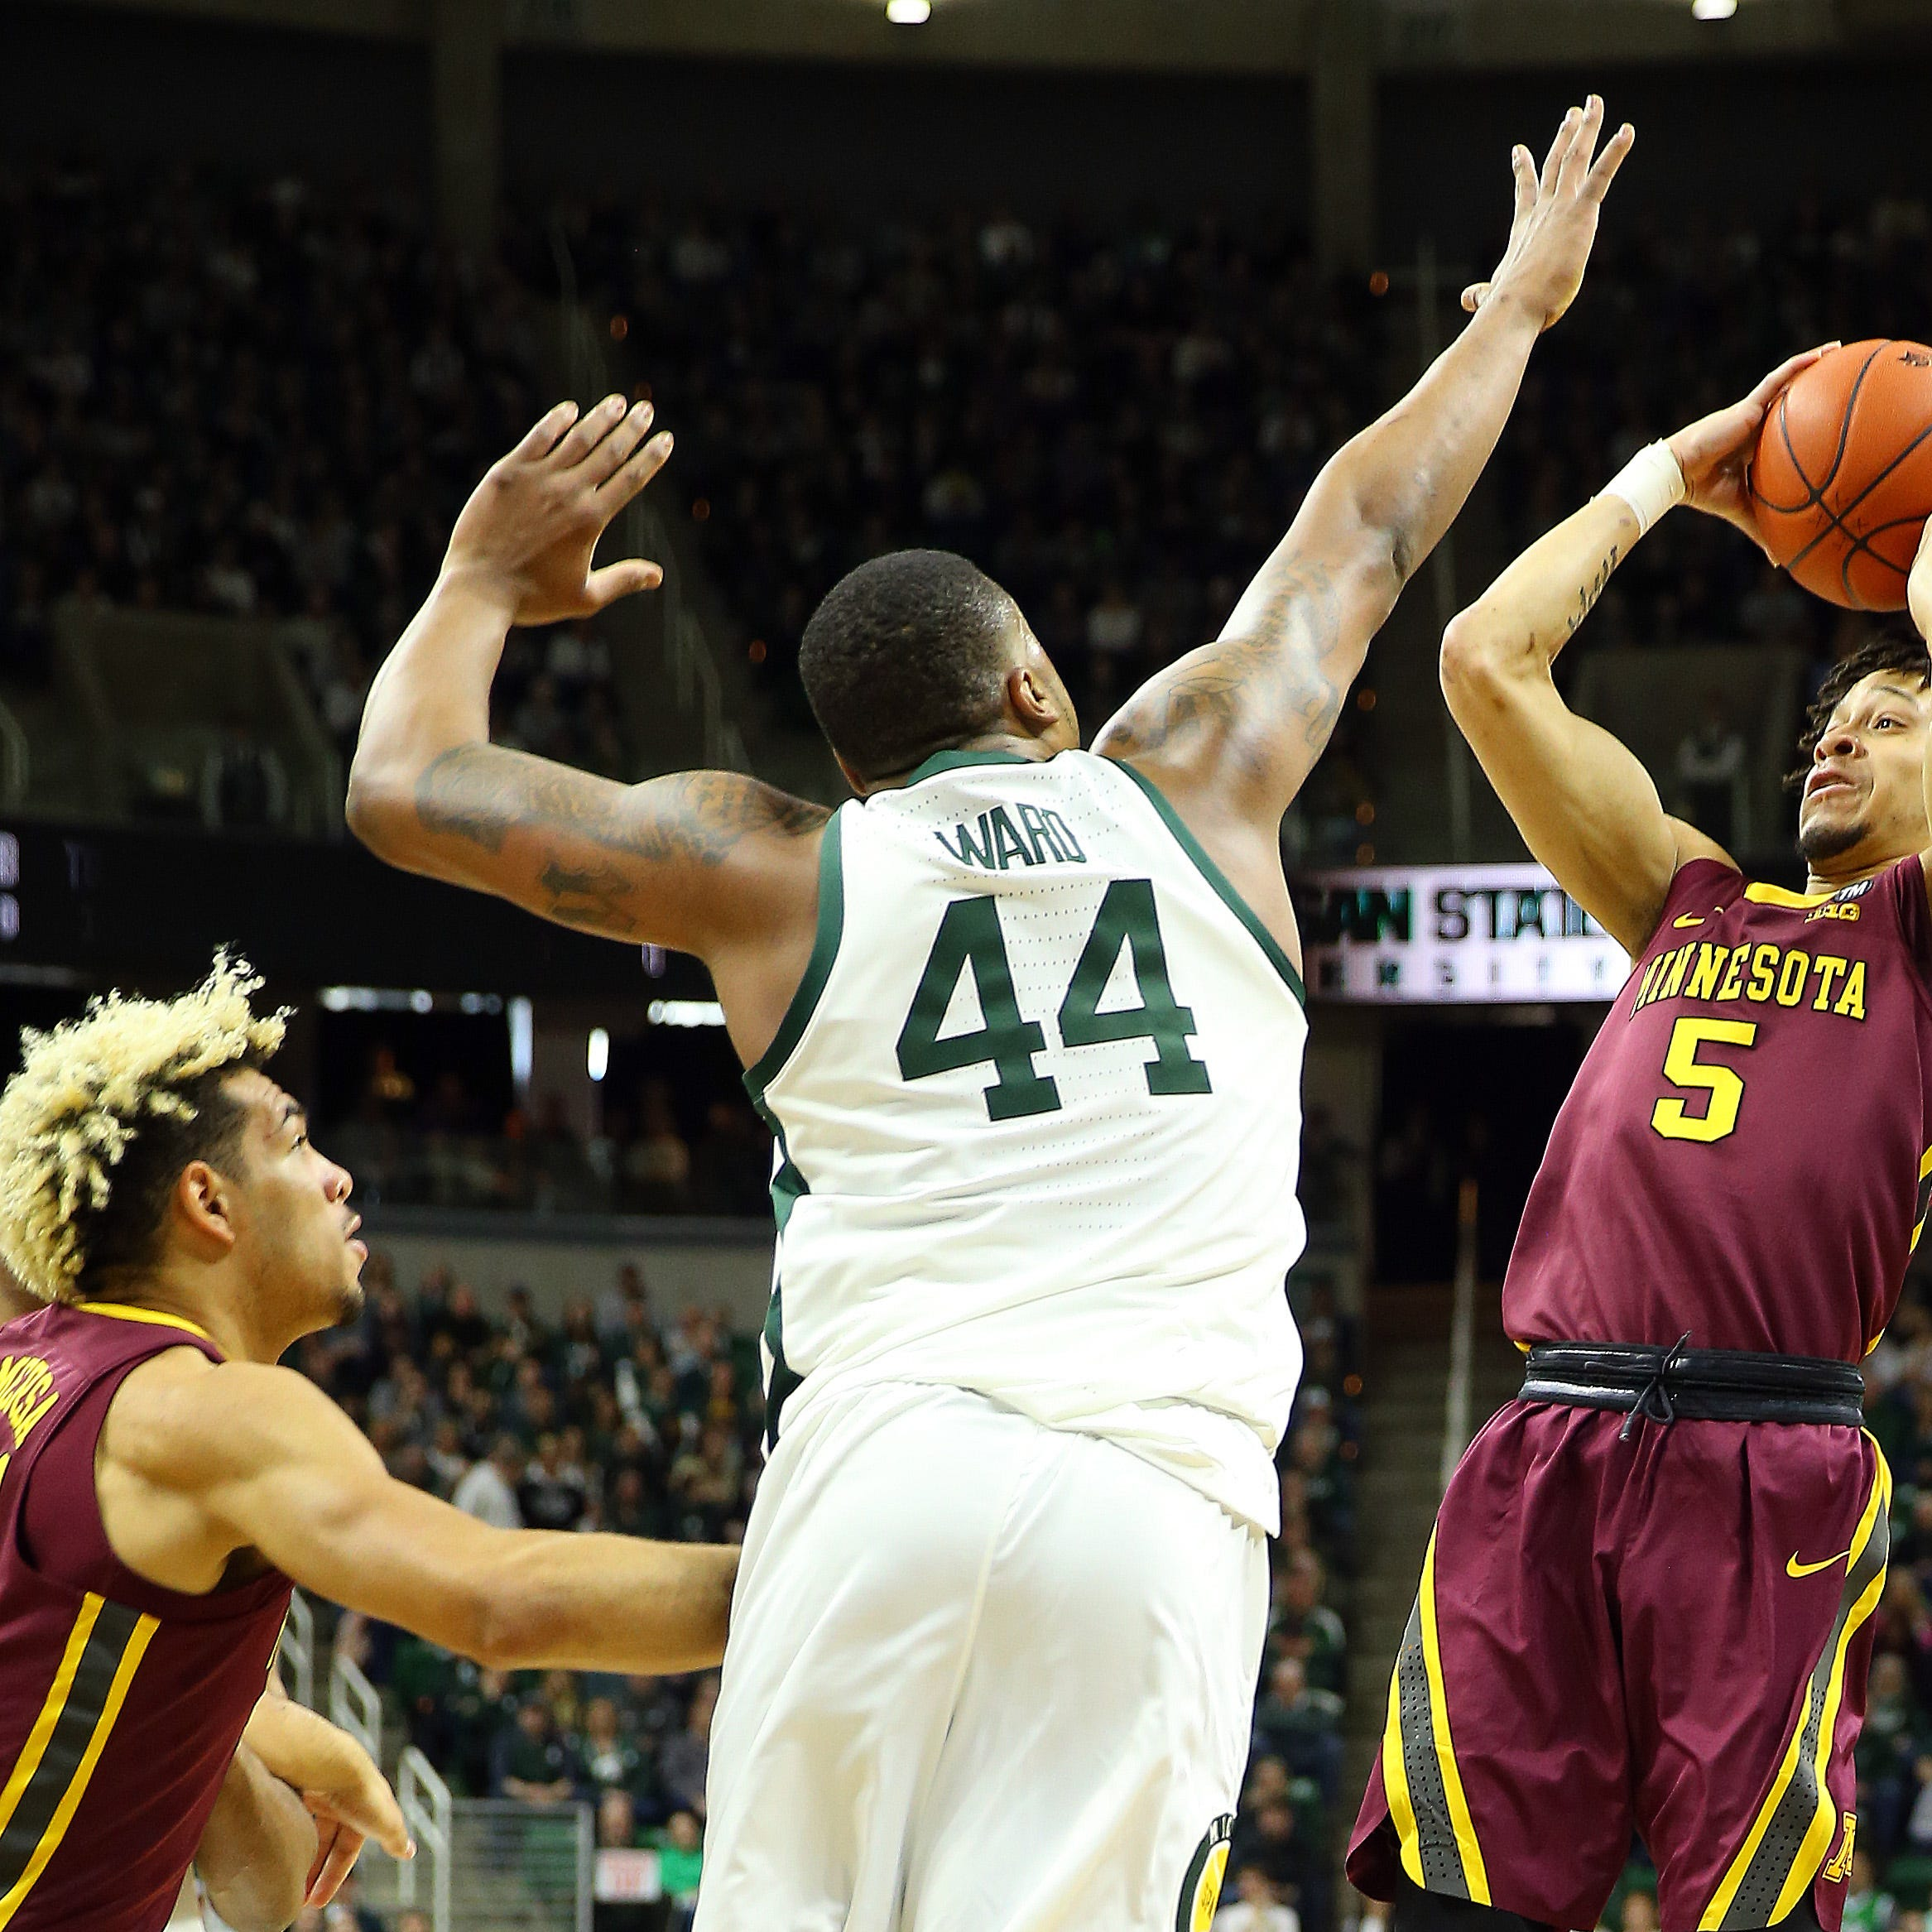 Michigan State basketball expects 'completely different' Minnesota team in NCAA tournament